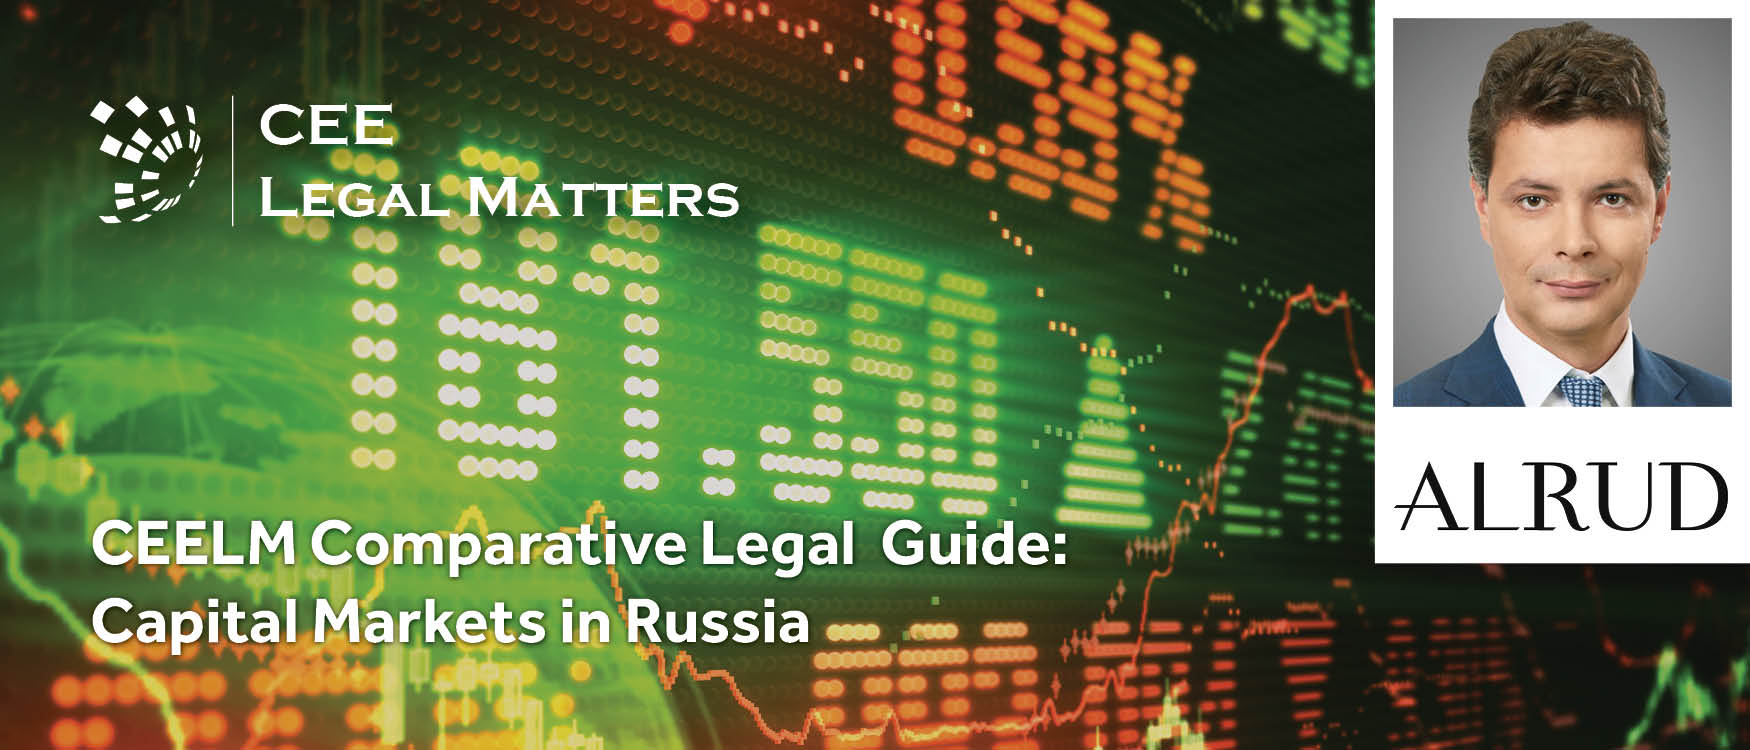 Capital Markets in Russia